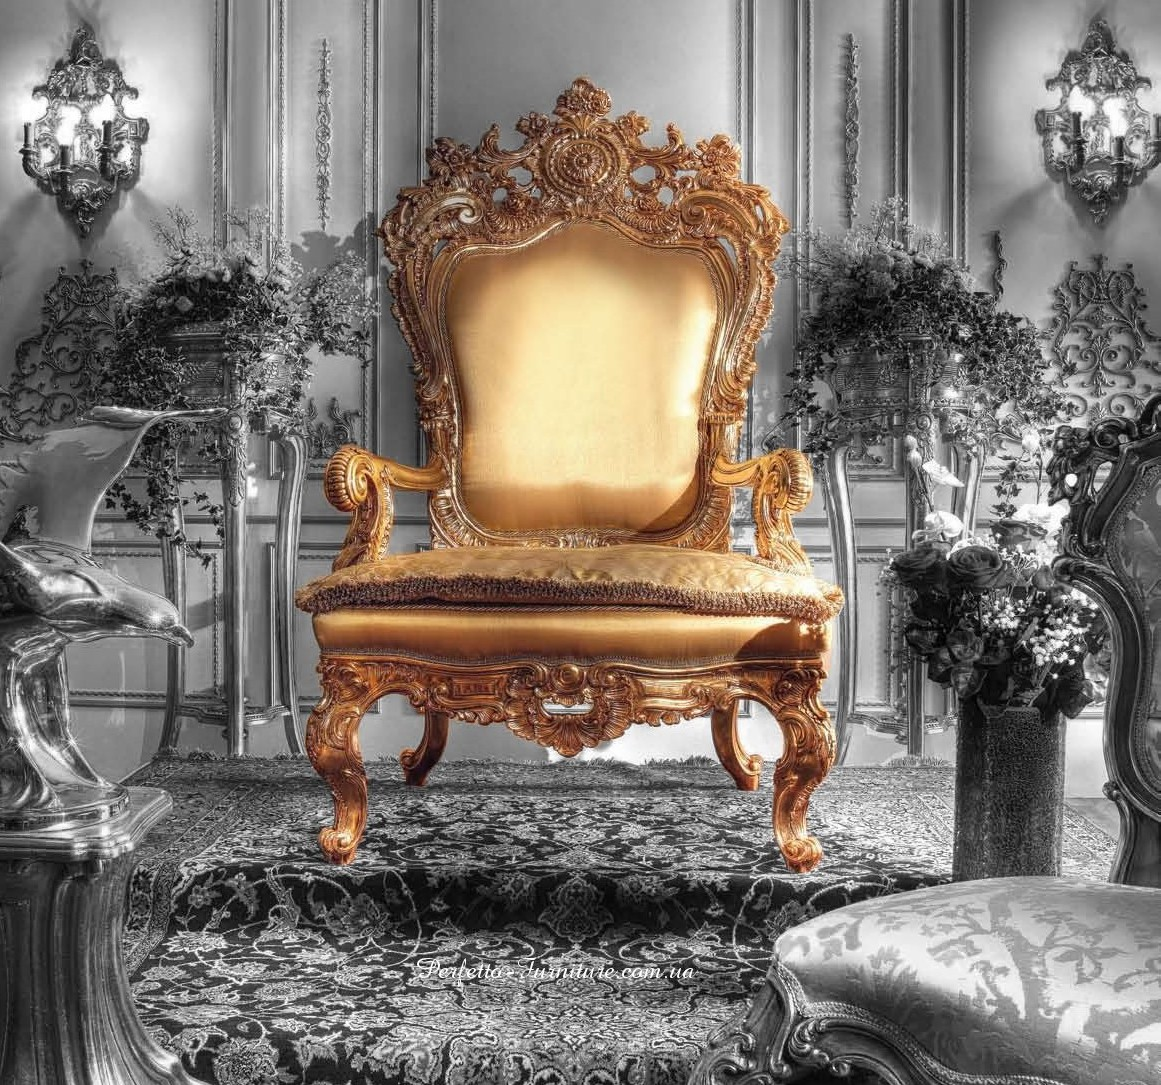 King Chairs Throne Royal Armchair For Kings Prince And Queenstop